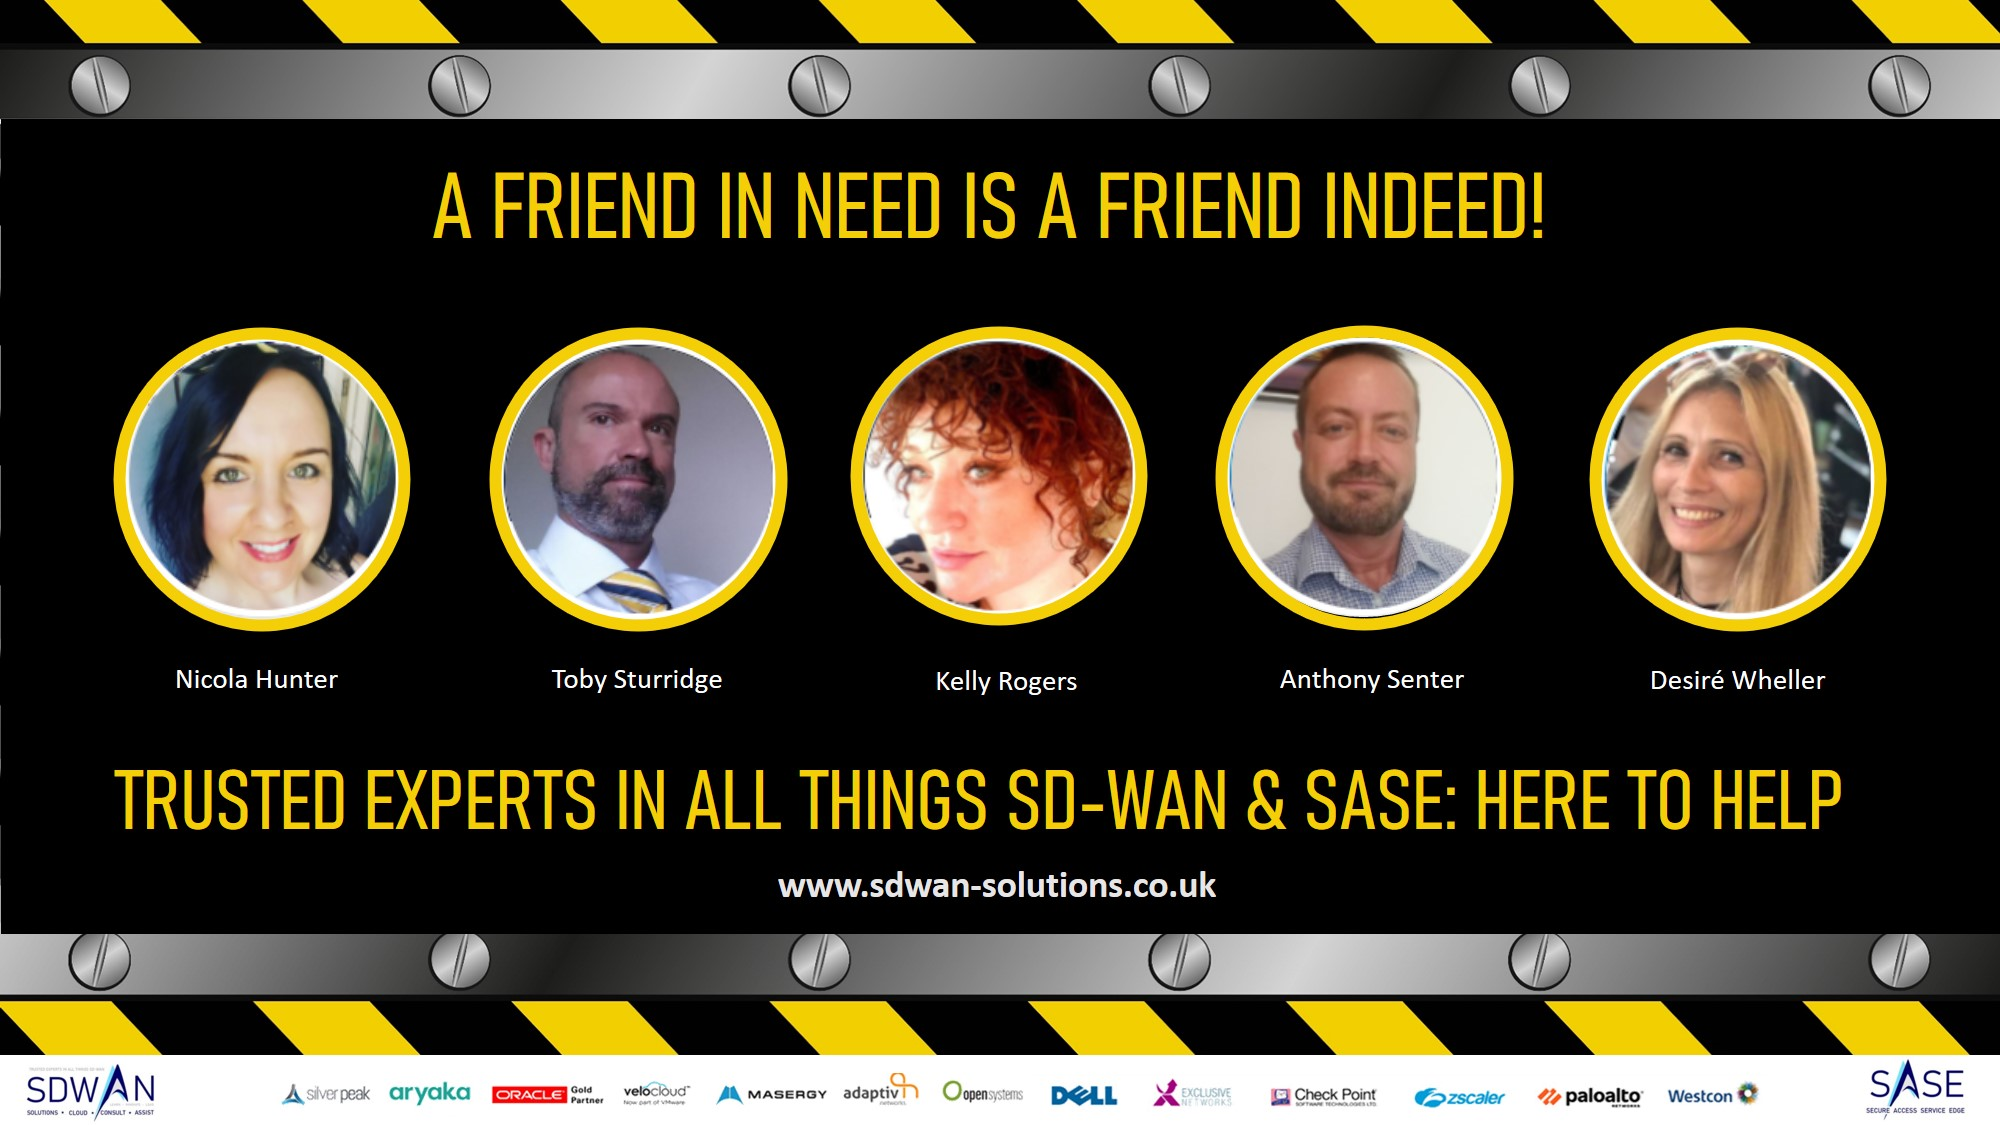 SDWAN Solutions team - here to help